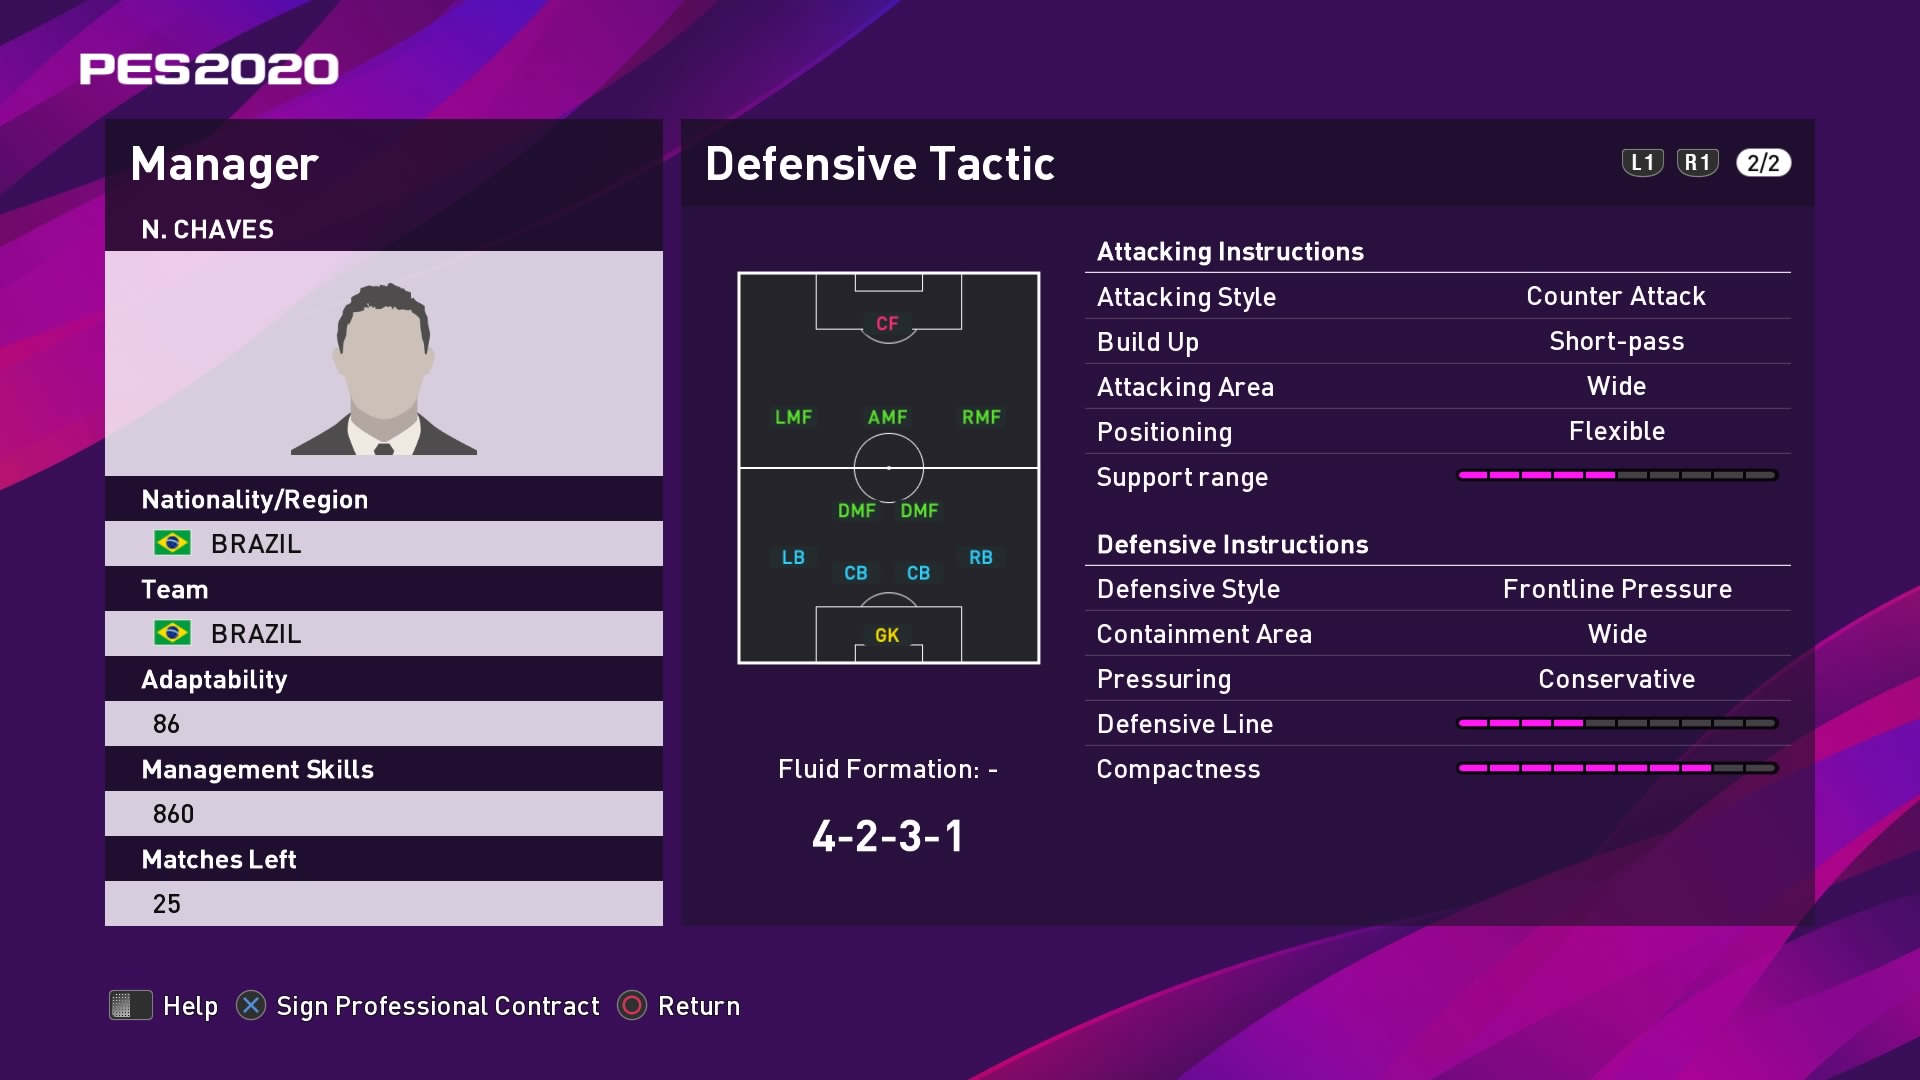 N. Chaves (Tite) Defensive Tactic in PES 2020 myClub